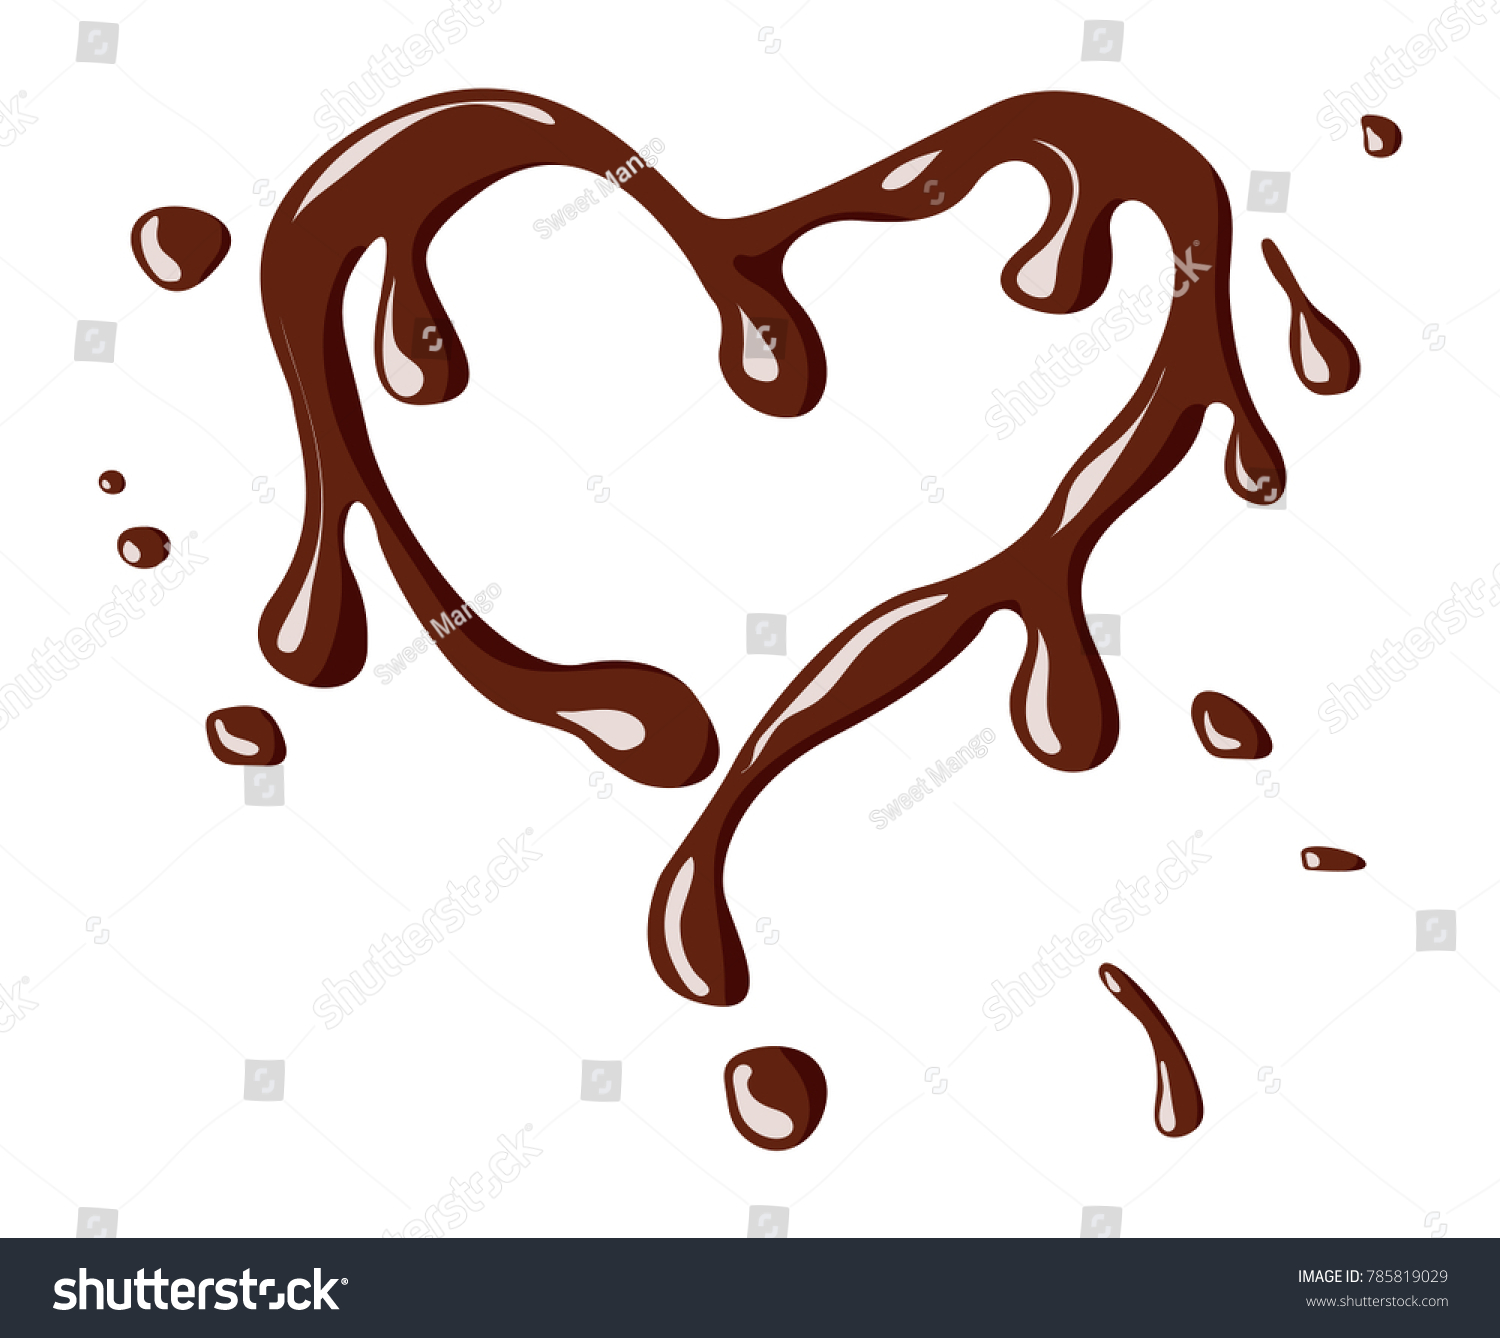 heartshaped chocolate splash isolate on white stock vector royalty free 785819029 https www shutterstock com image vector heartshaped chocolate splash isolate on white 785819029